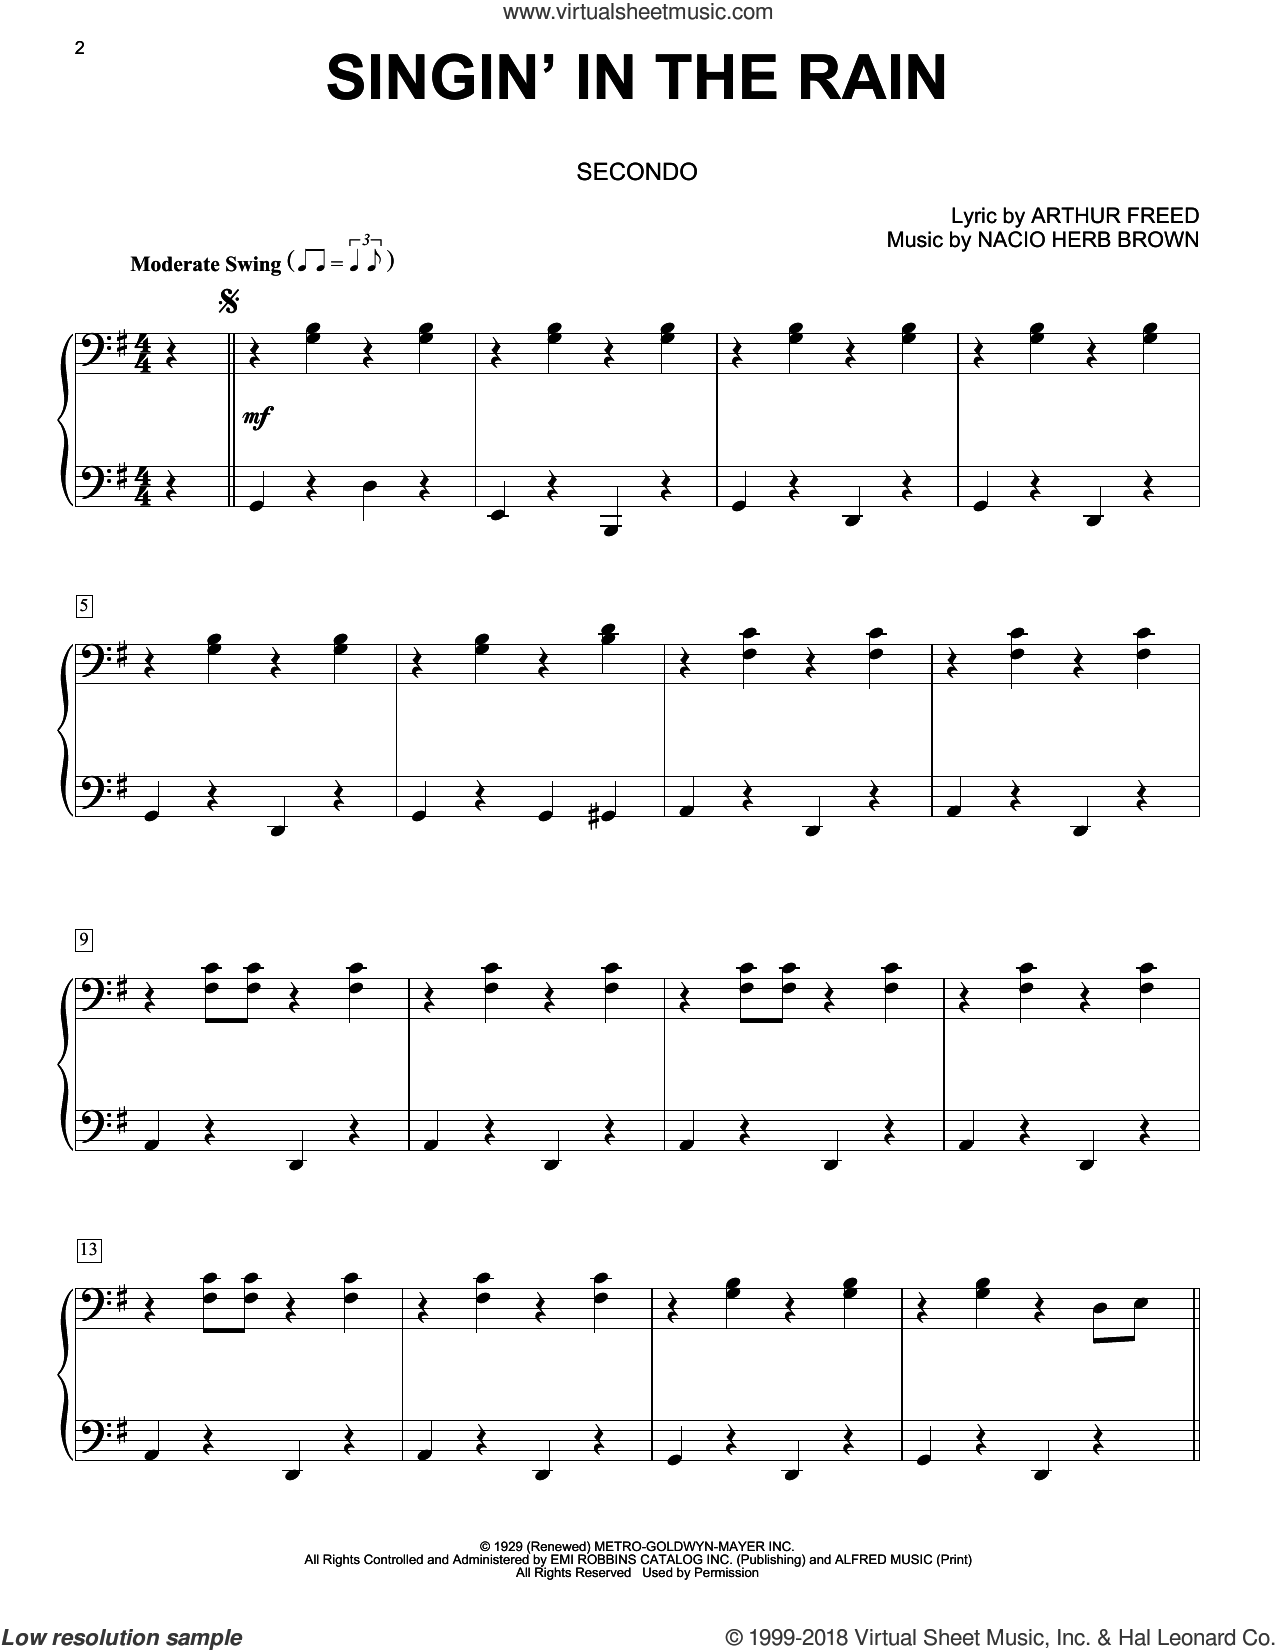 Singin' In The Rain sheet music for piano four hands by Nacio Herb Brown and Arthur Freed, intermediate skill level